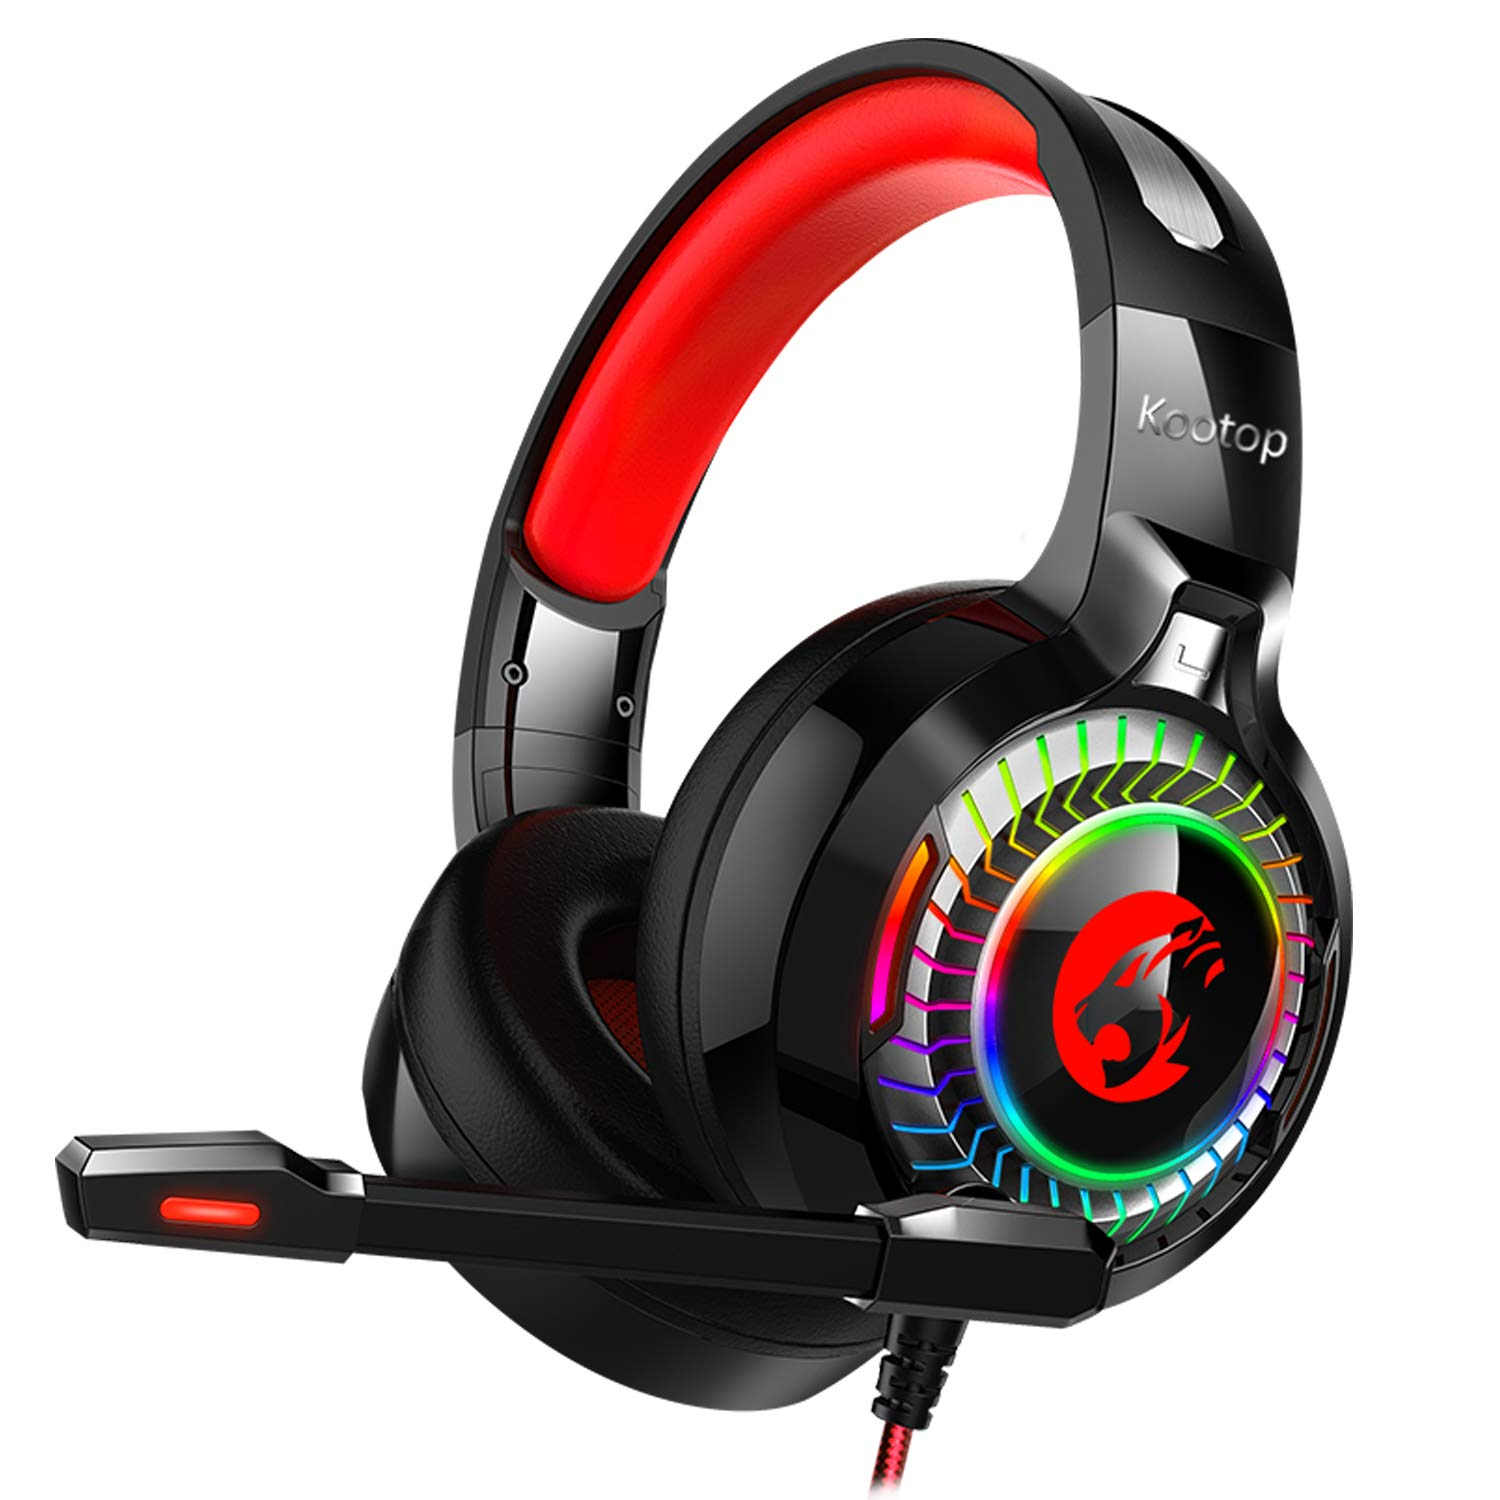 Gaming Headset for Xbox One,PS4,PC,Noise Cancelling Over Ear Headphones with Mic,RGB Light,Volume-Control, Bass, Soft Memory Earmuffs for Laptop Mac Nintendo Switch Games(Black&Red) by Kootop